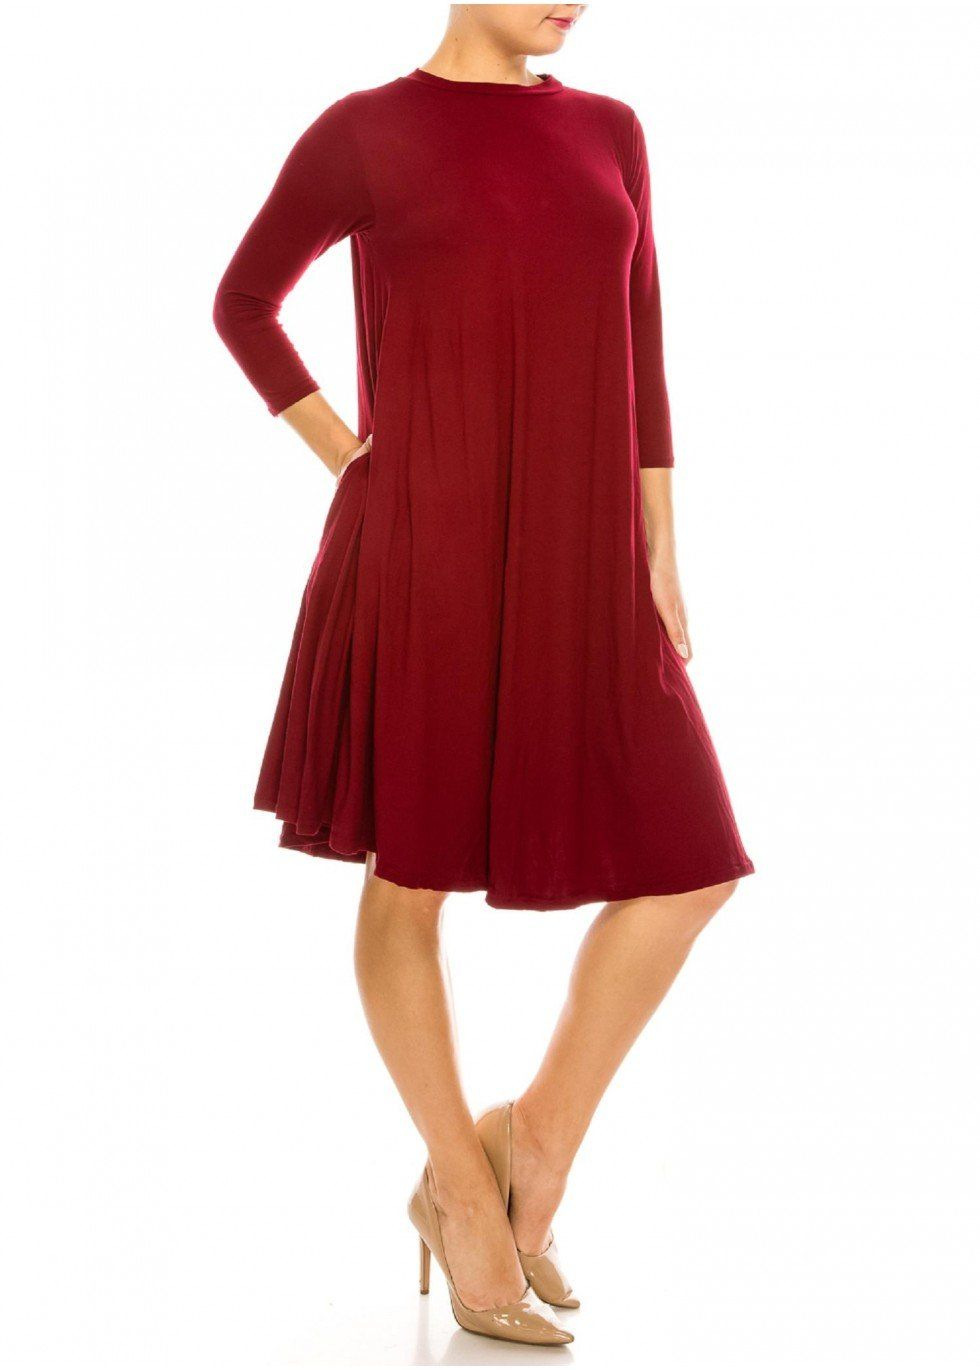 *Promo 3 Pack* - CHOOSE FROM 5 COLORS! Brushed Super Soft Swing Dress